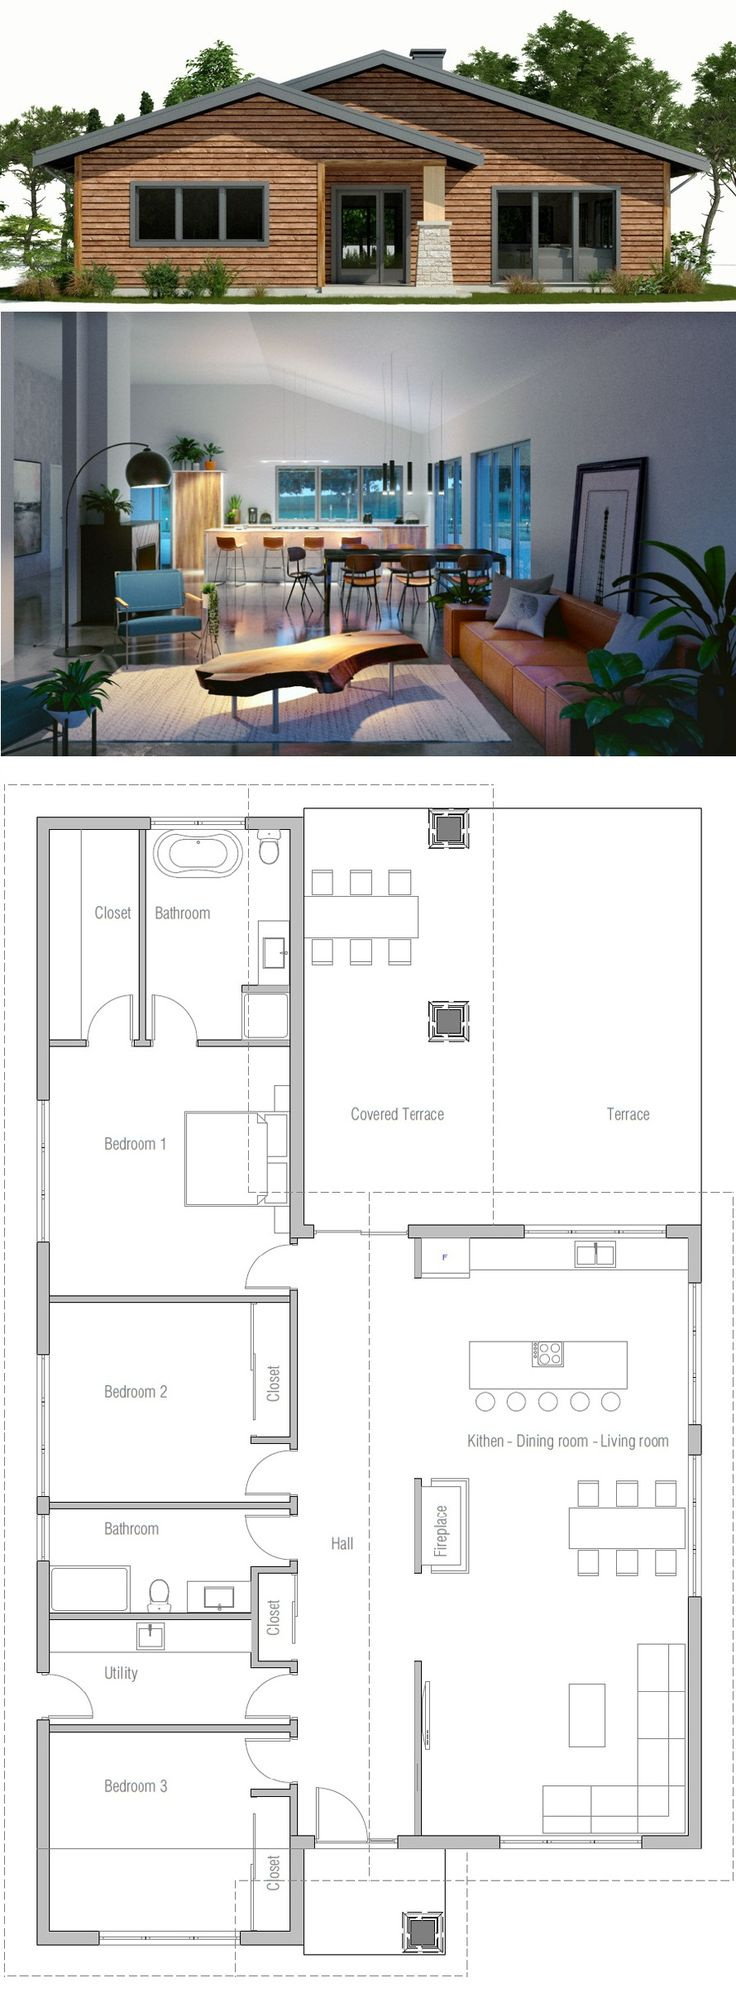 Floor Plan 3 Bdrms Move Kitchen And DR To Front Extend Living Space Into Terrace Area Add Bsmnt Stairs In Utility Side Entry Can Make Narrower Fit